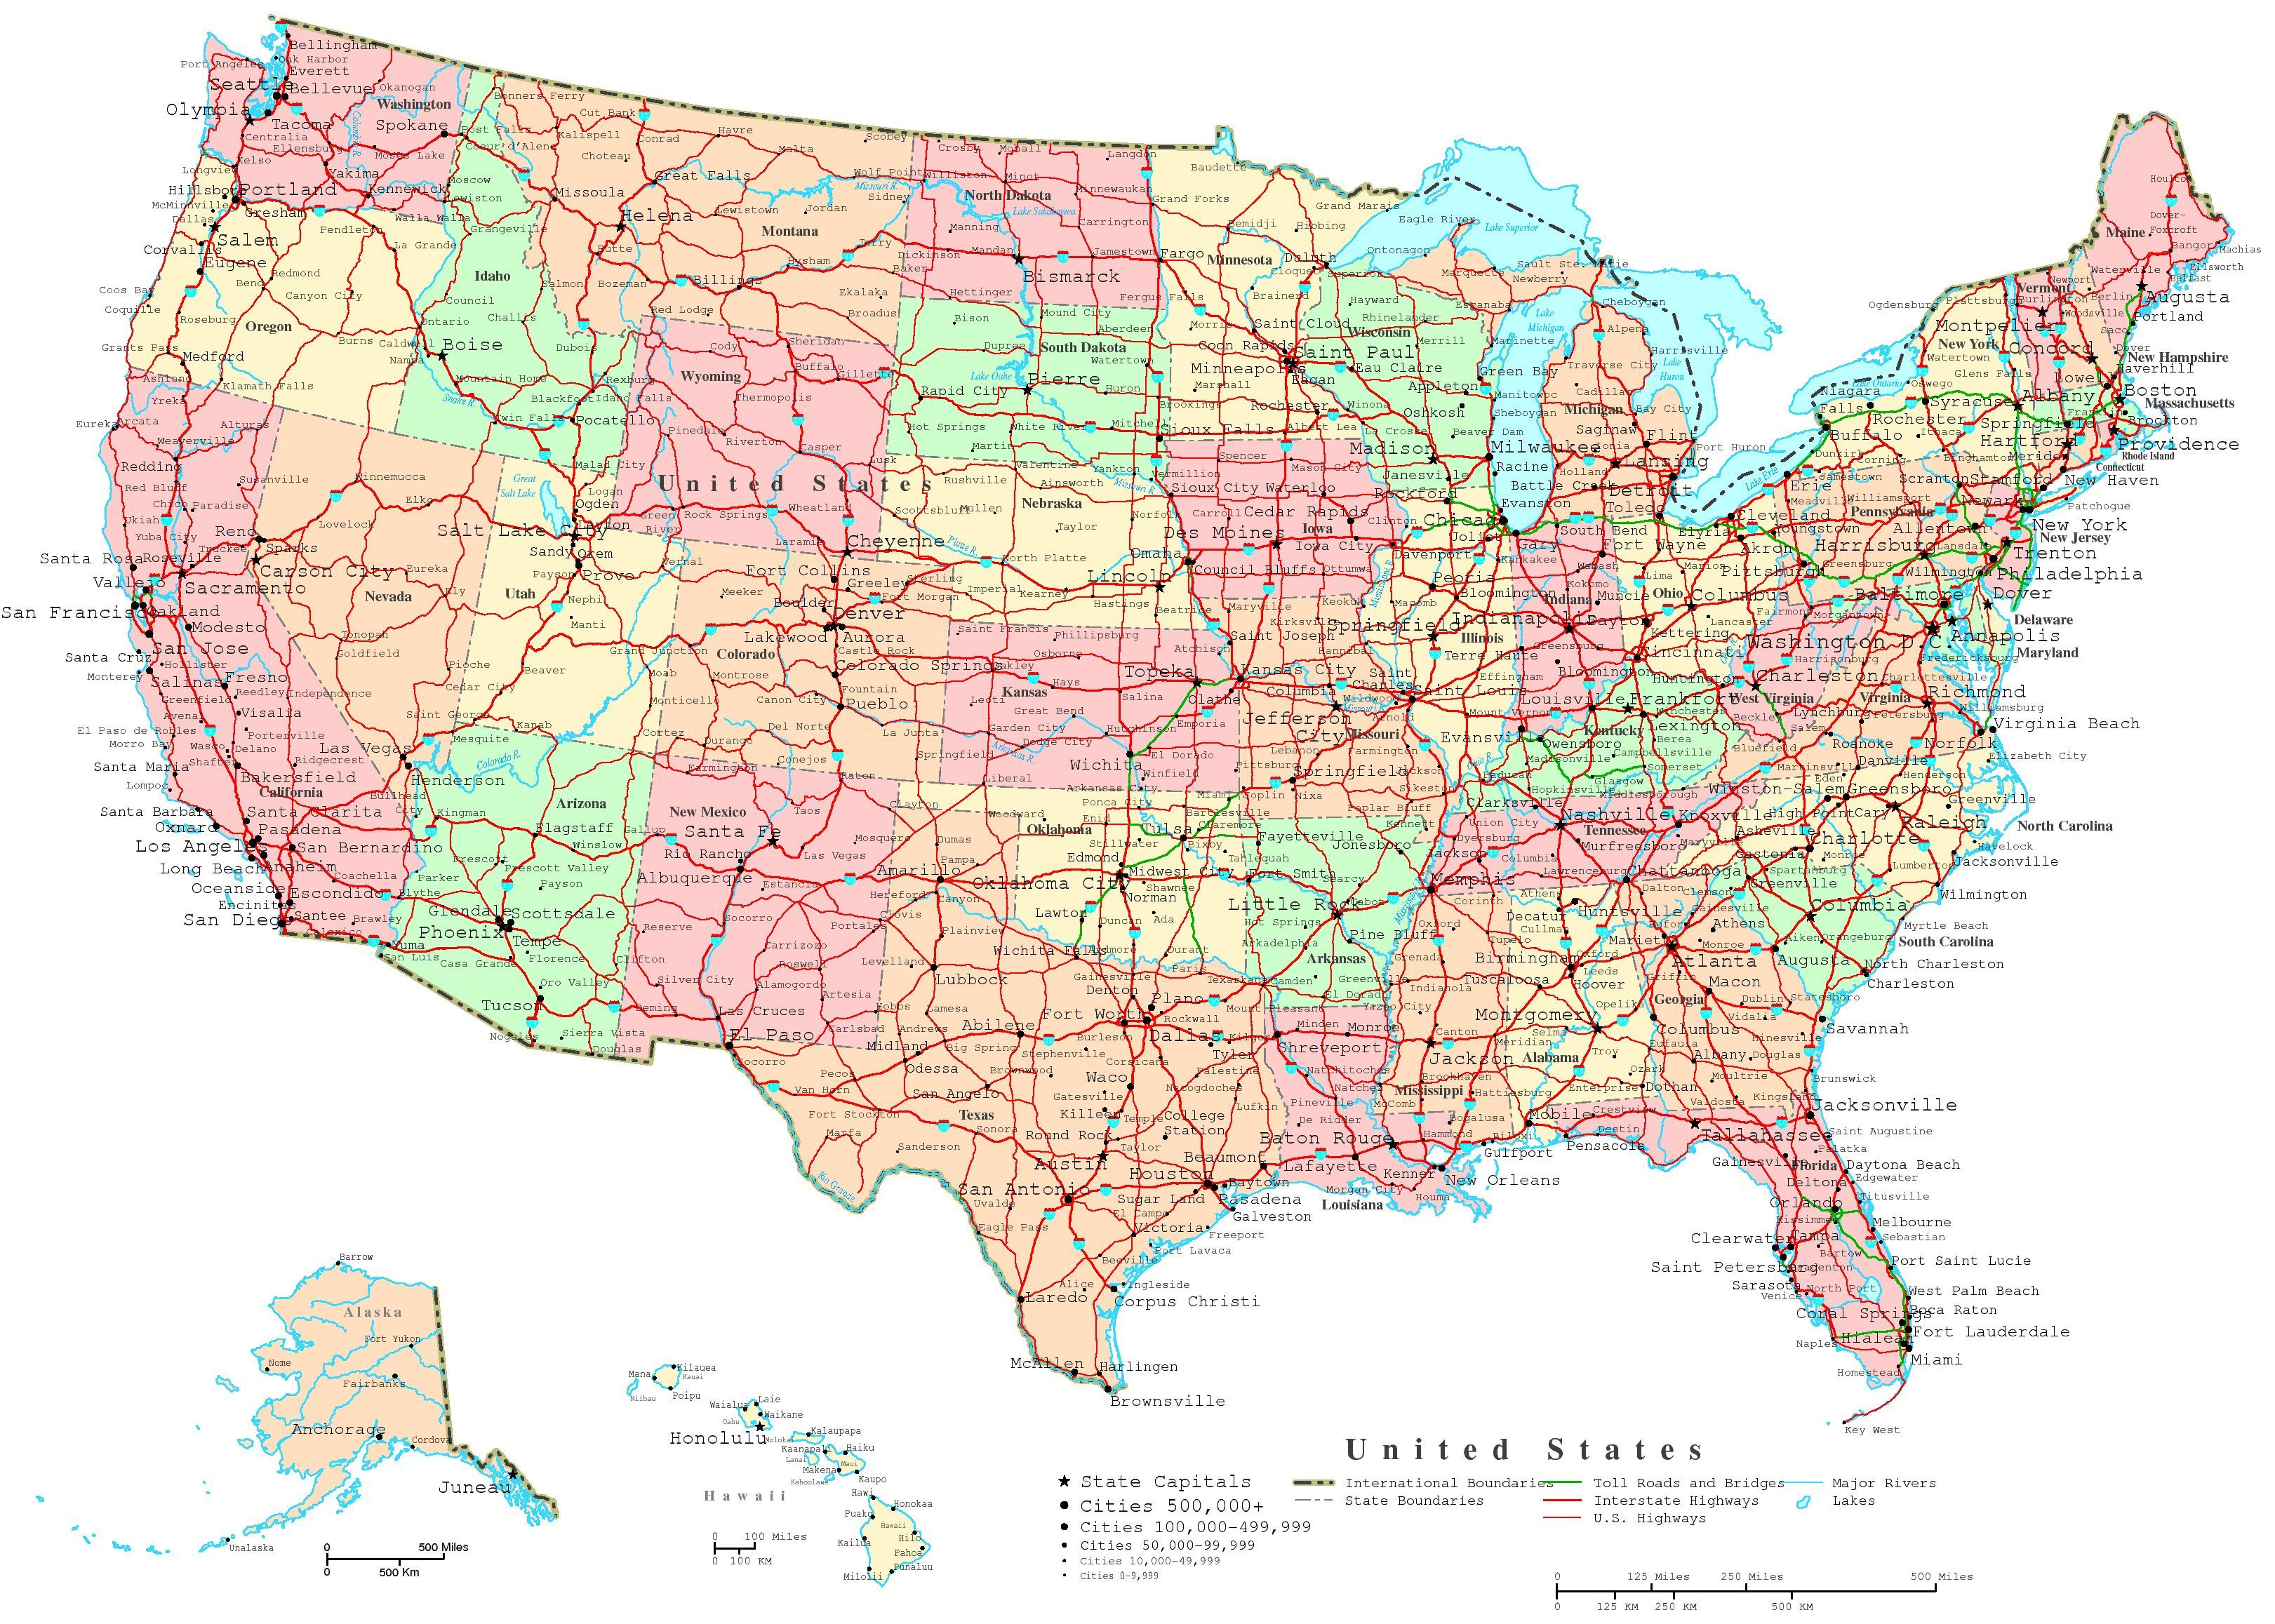 Map Of The Us States | Printable United States Map | Jb's Travels - United States Travel Map Printable